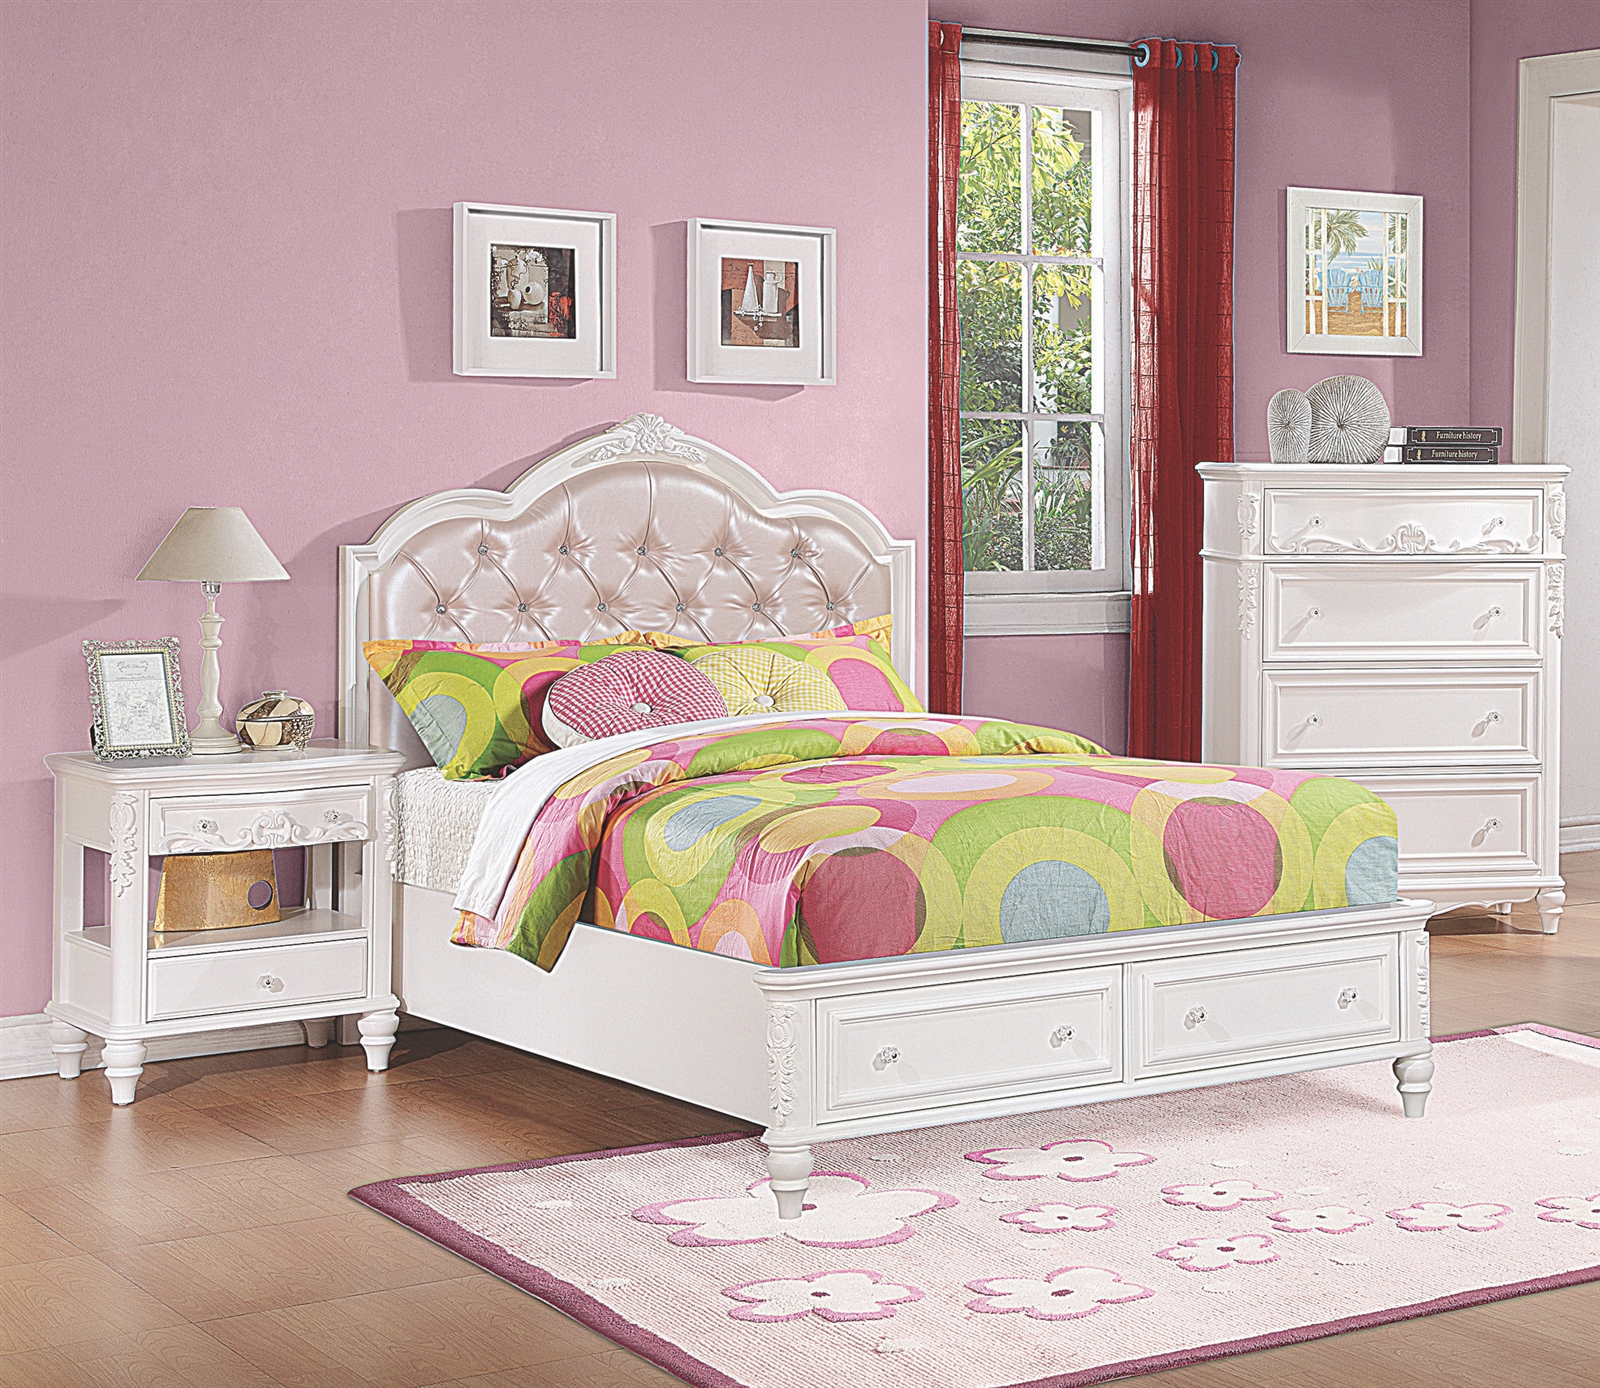 Bright White Wooden Princess Bed With Pink Button Tufted Headboard